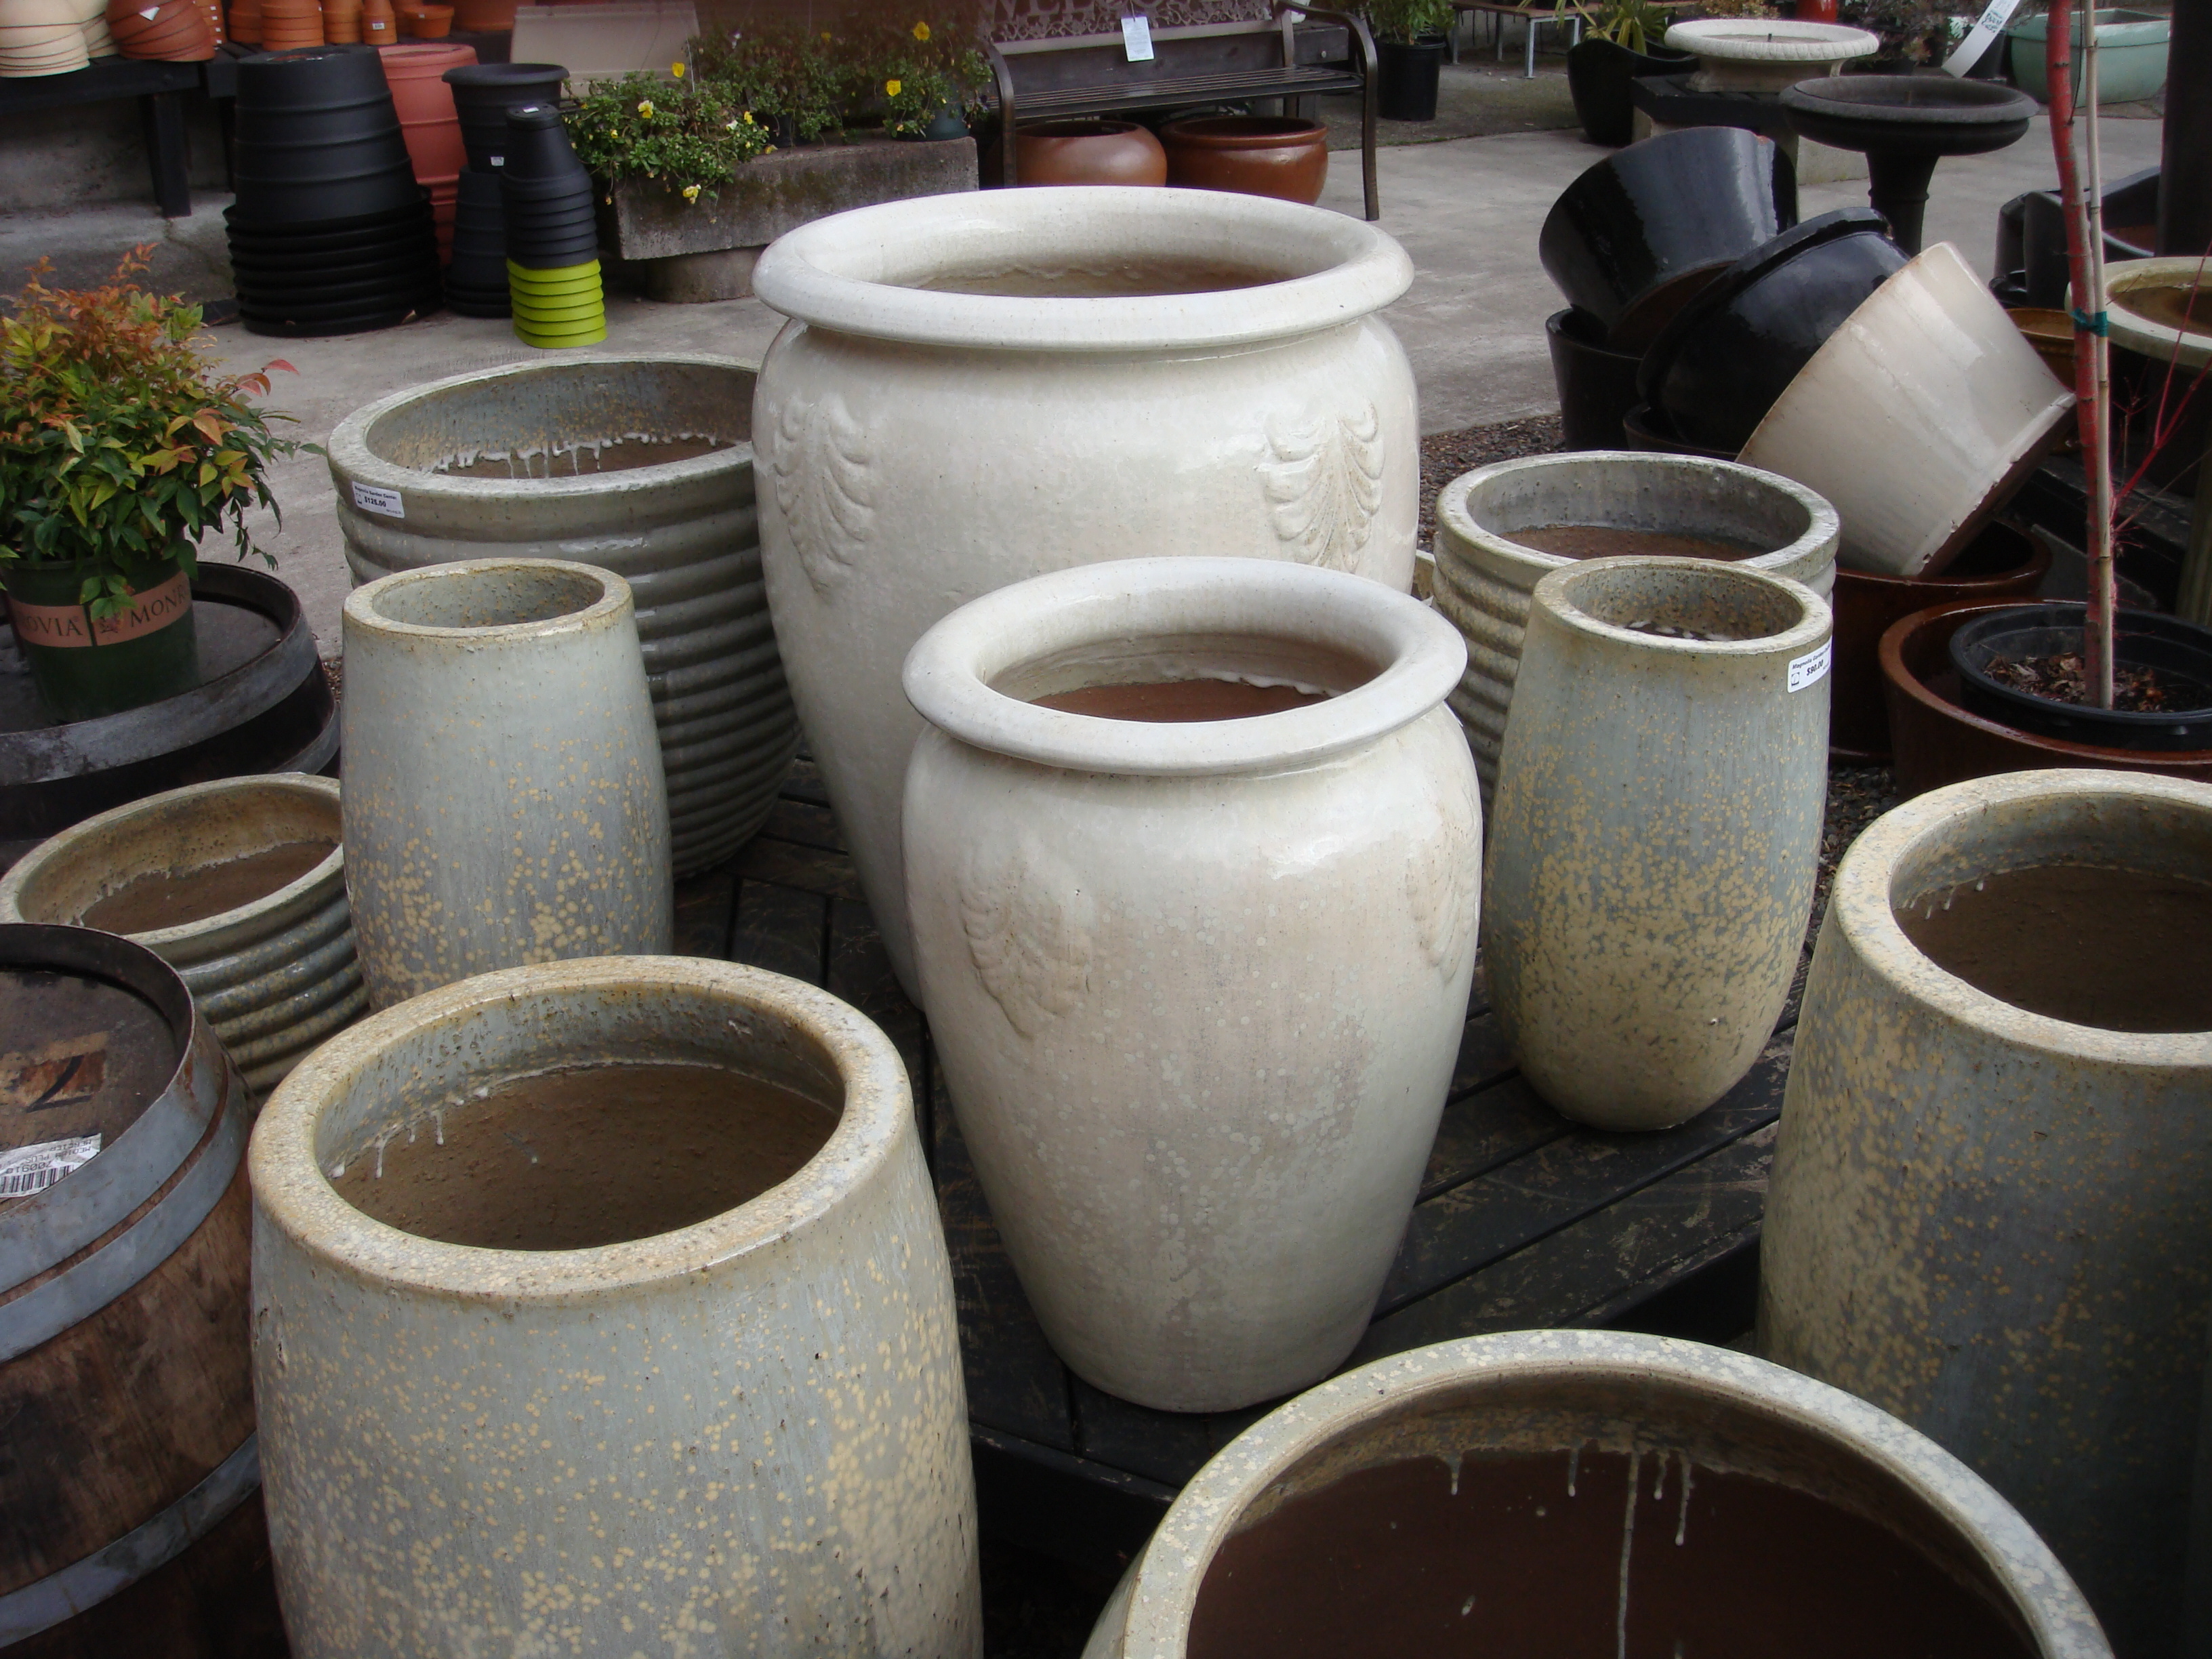 Magnolia Garden Center Seattle Wa Containers And Pots For Plants Flowers Trees